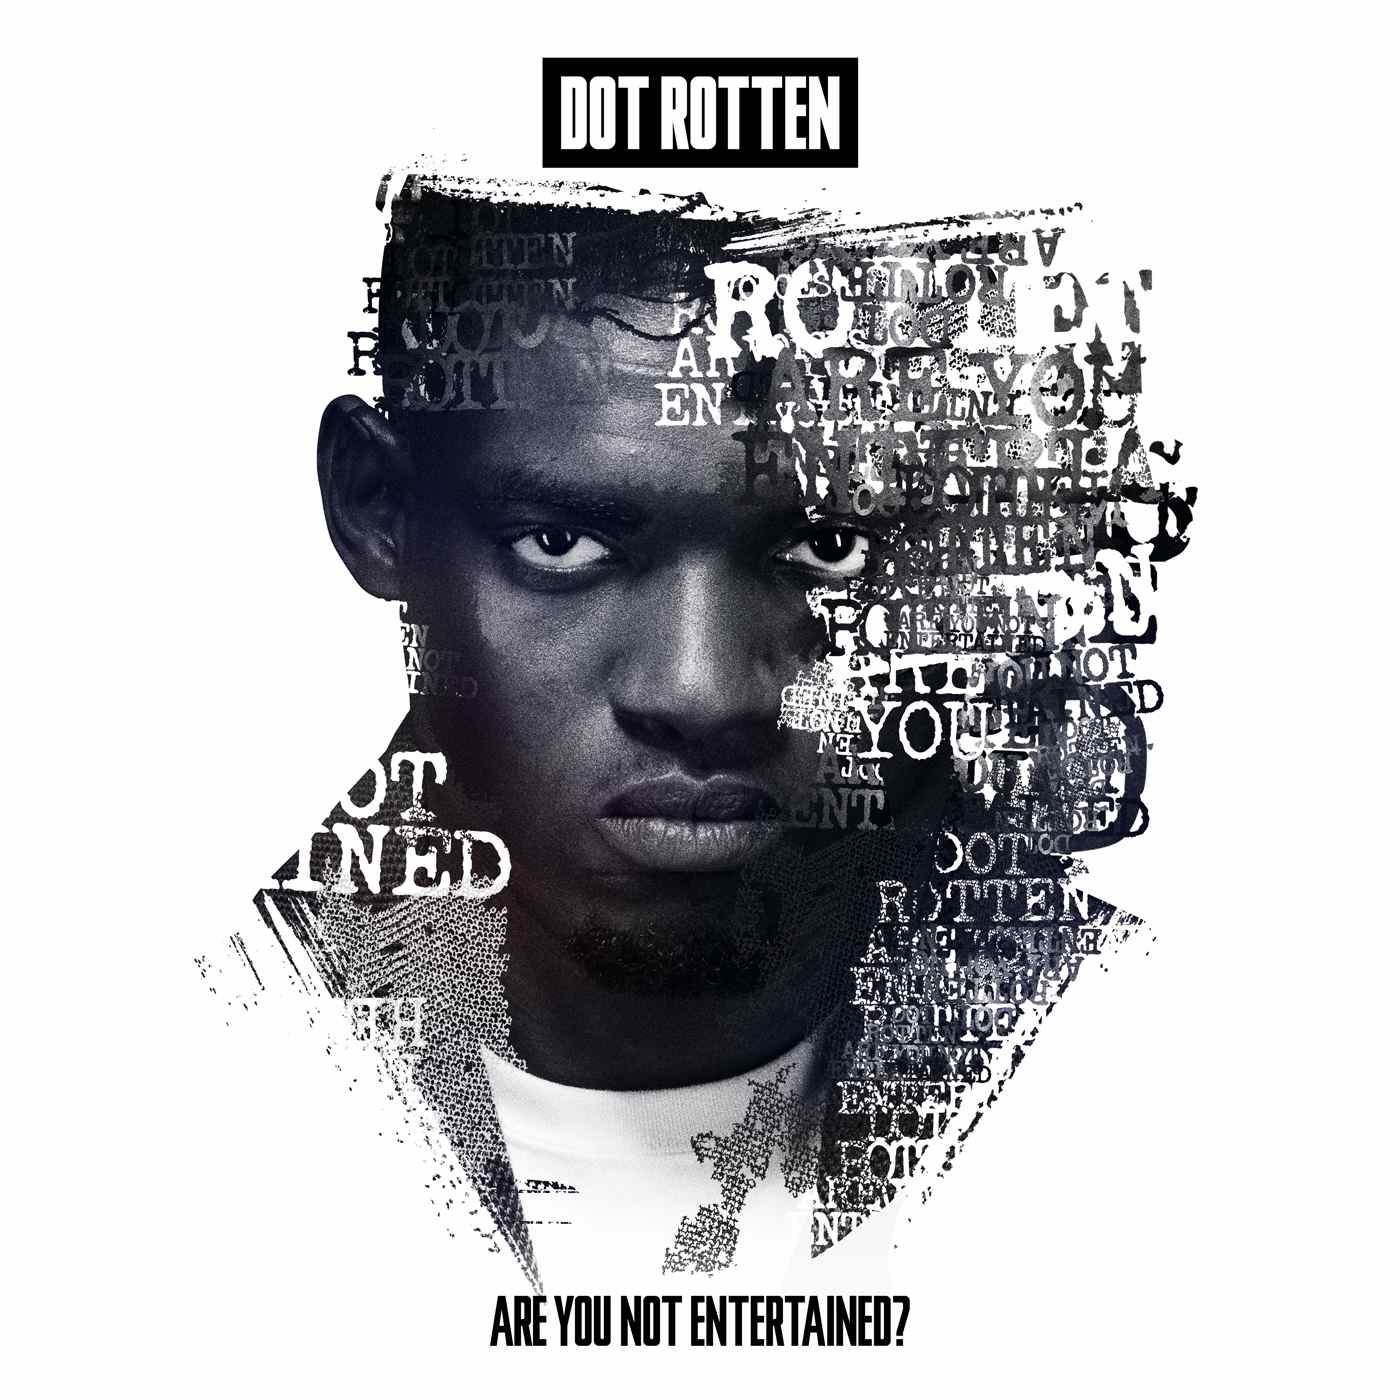 Dot Rotten - Are You Not Entertained?